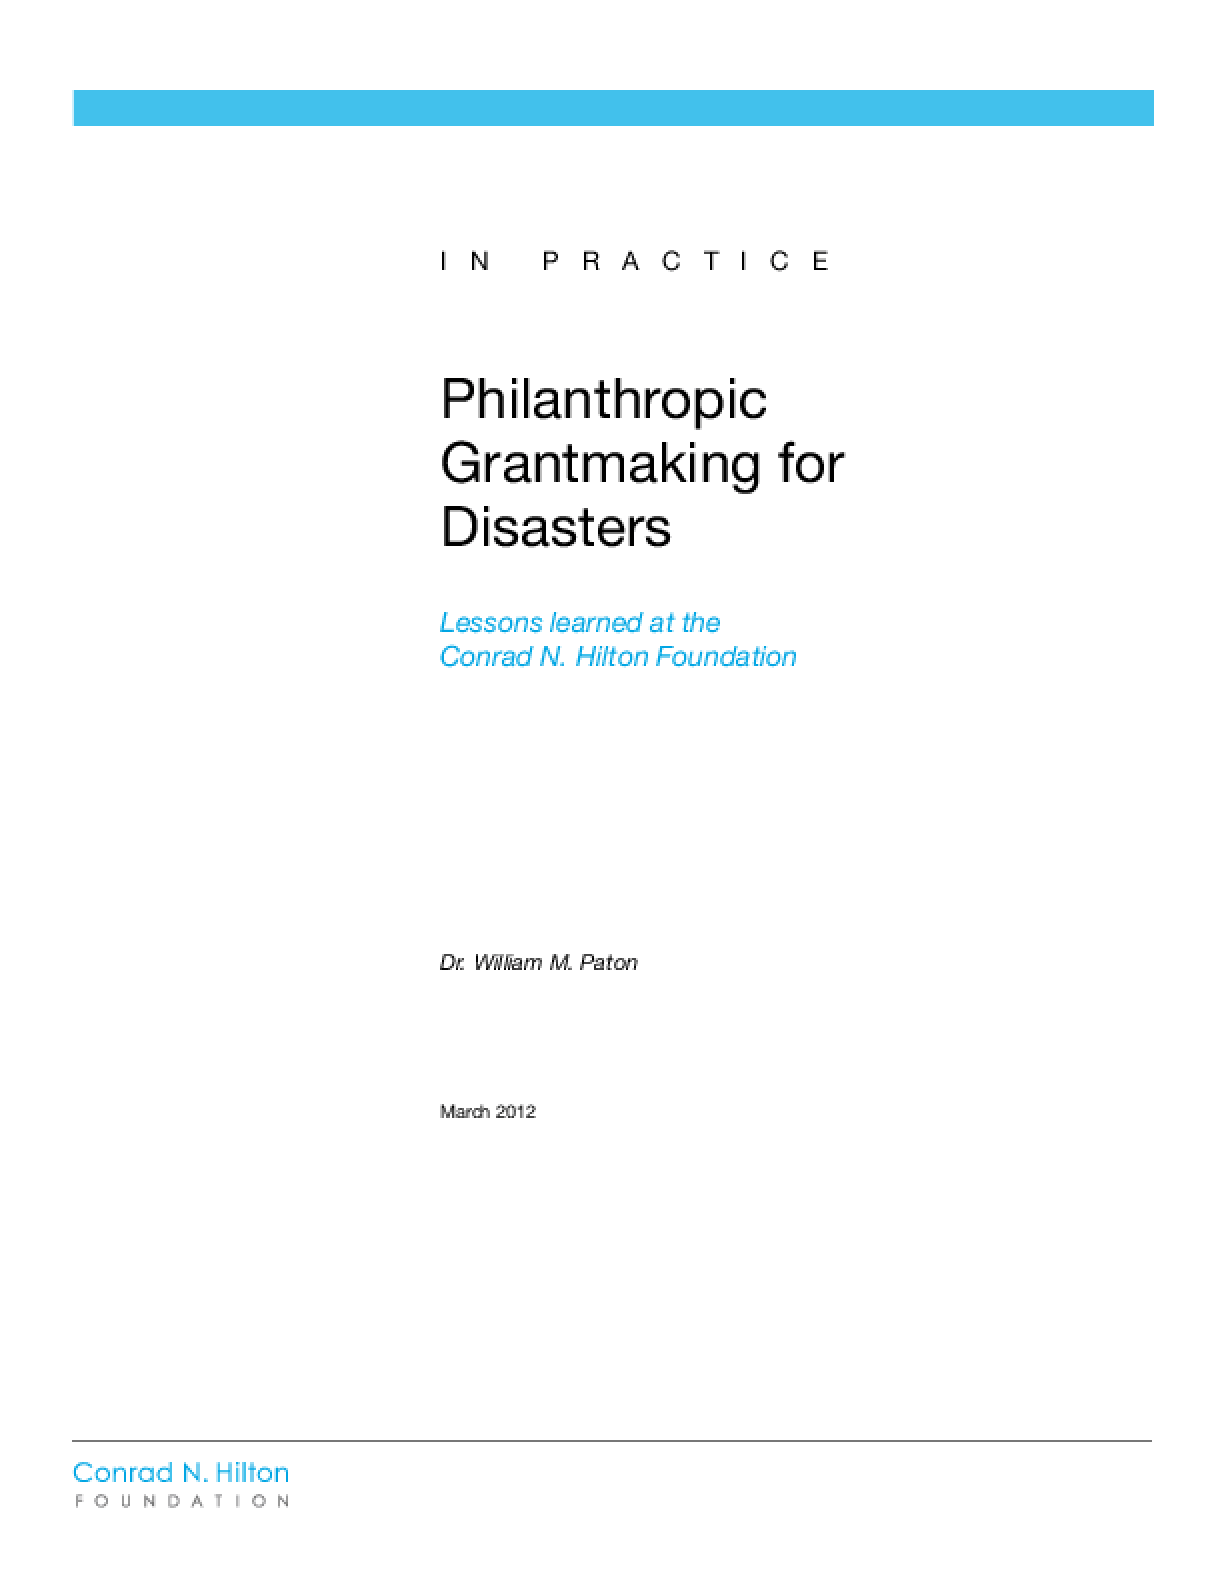 Philanthropic Grantmaking for Disasters